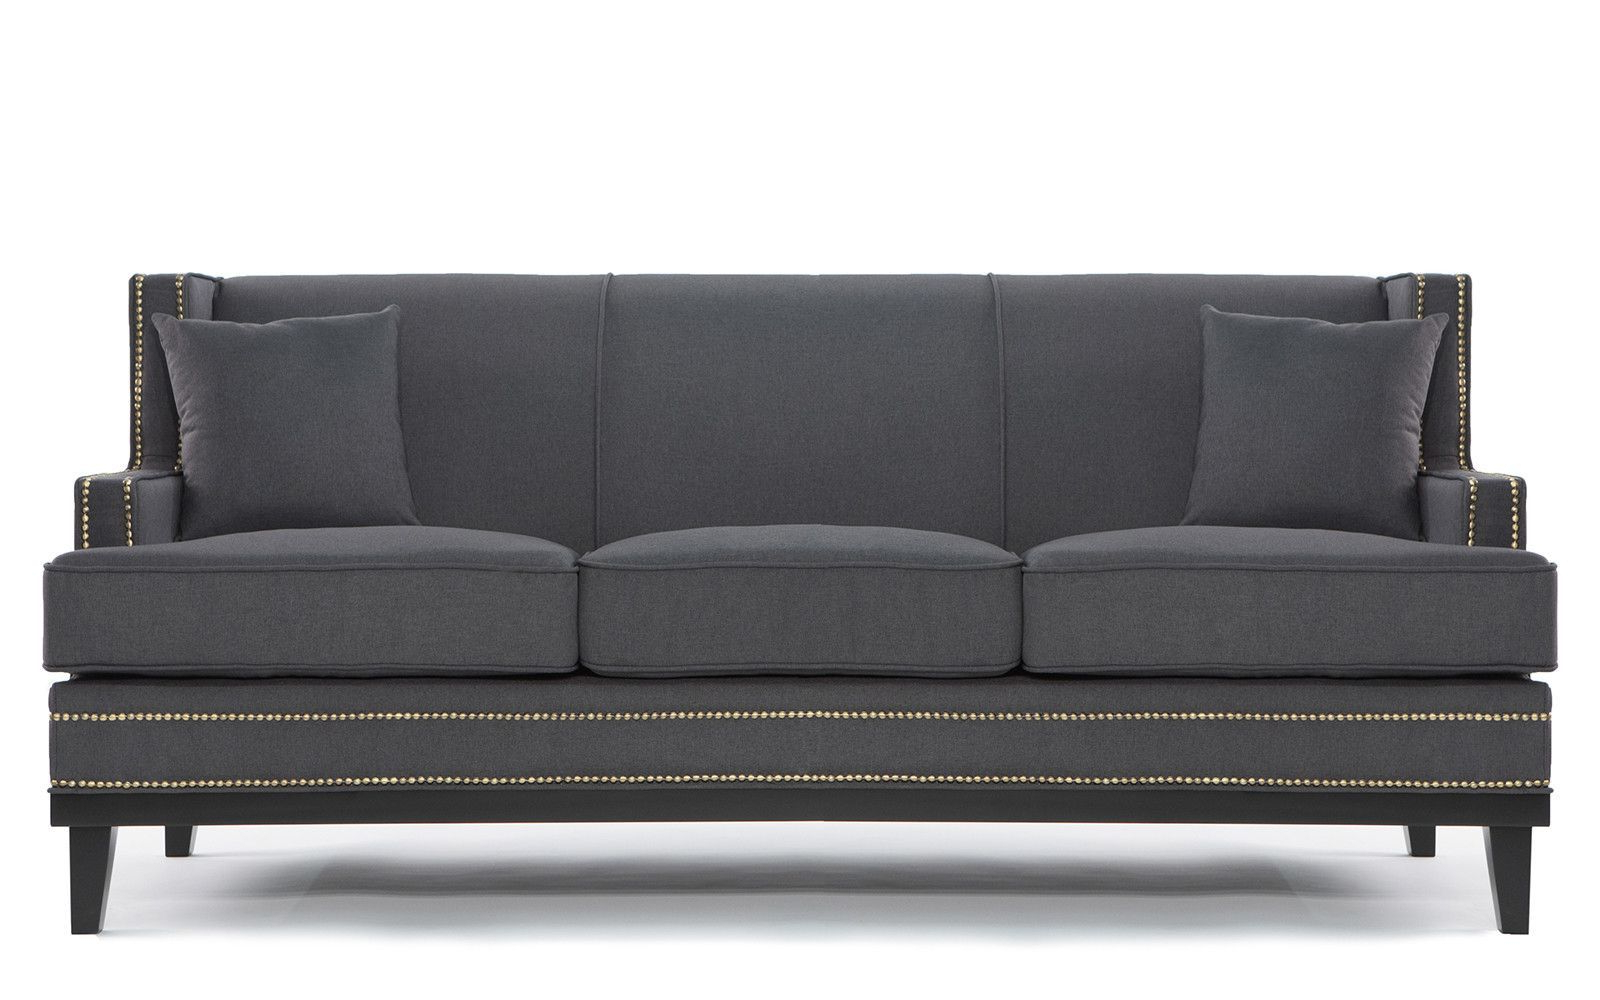 Linen Sofa, Sofa Within Newest Radcliff Nailhead Trim Sectional Sofas Gray (View 7 of 20)